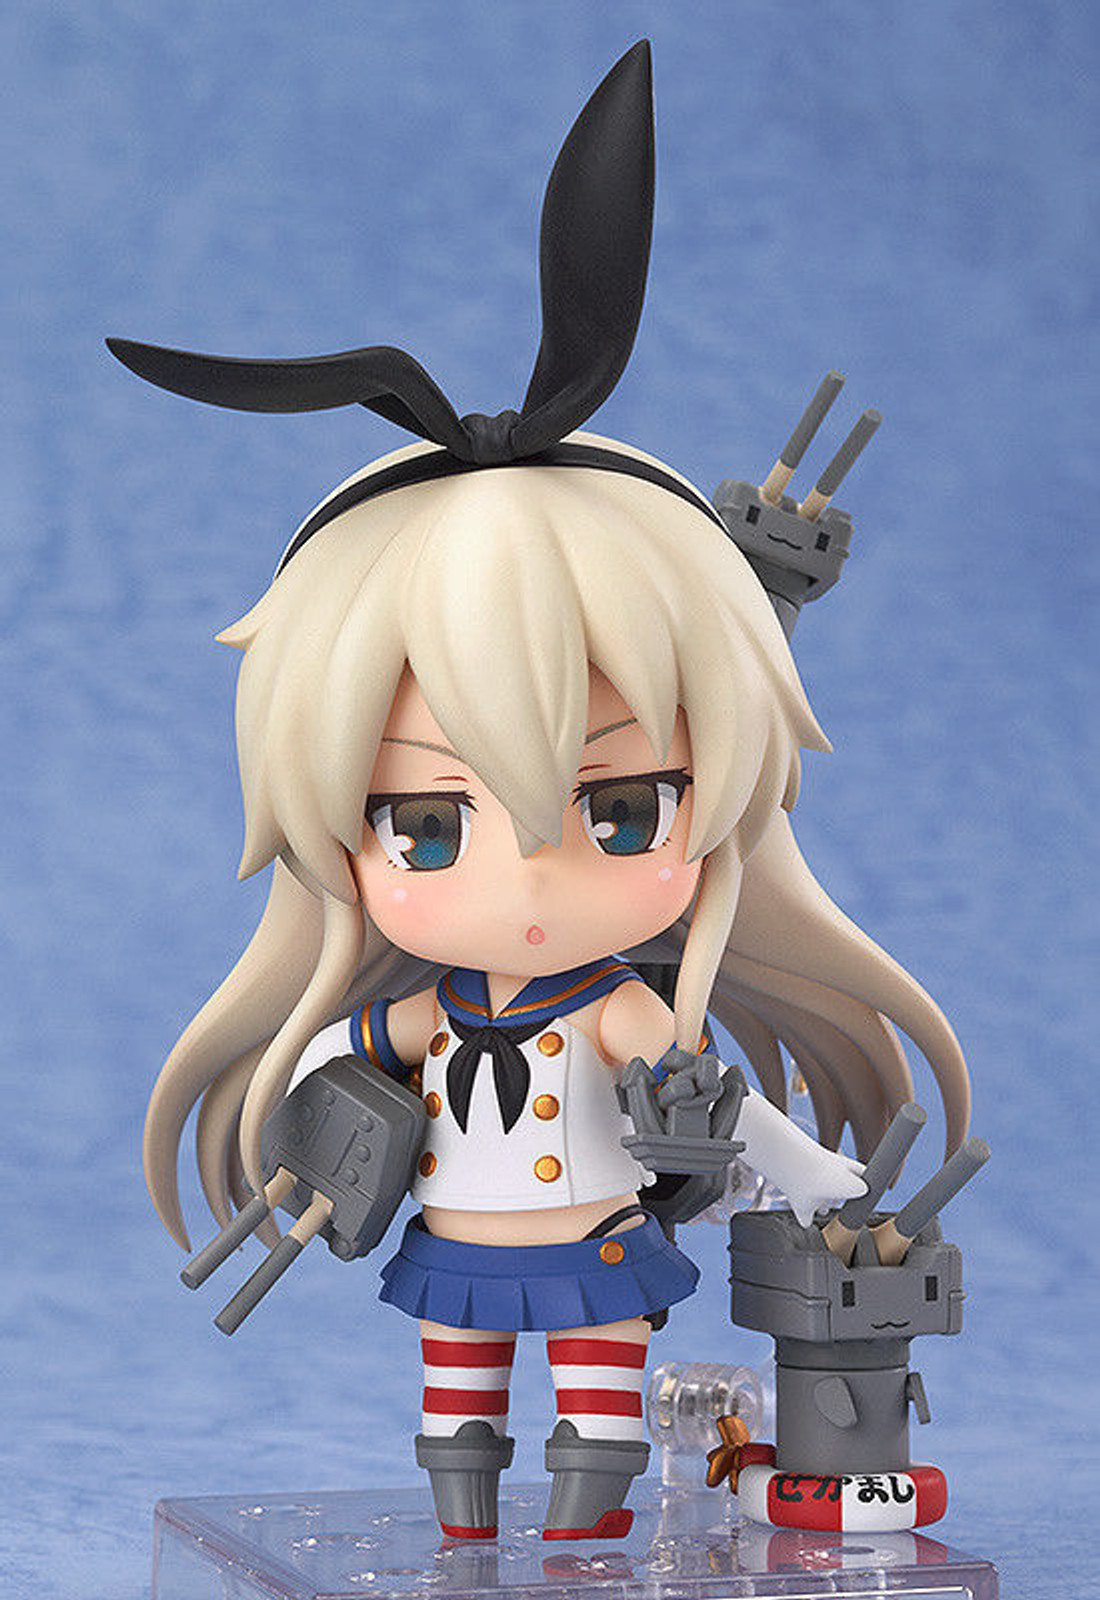 Nendoroid Kantai Collection Kan Colle Shimakaze Action Figure JAPAN ANIME GAME